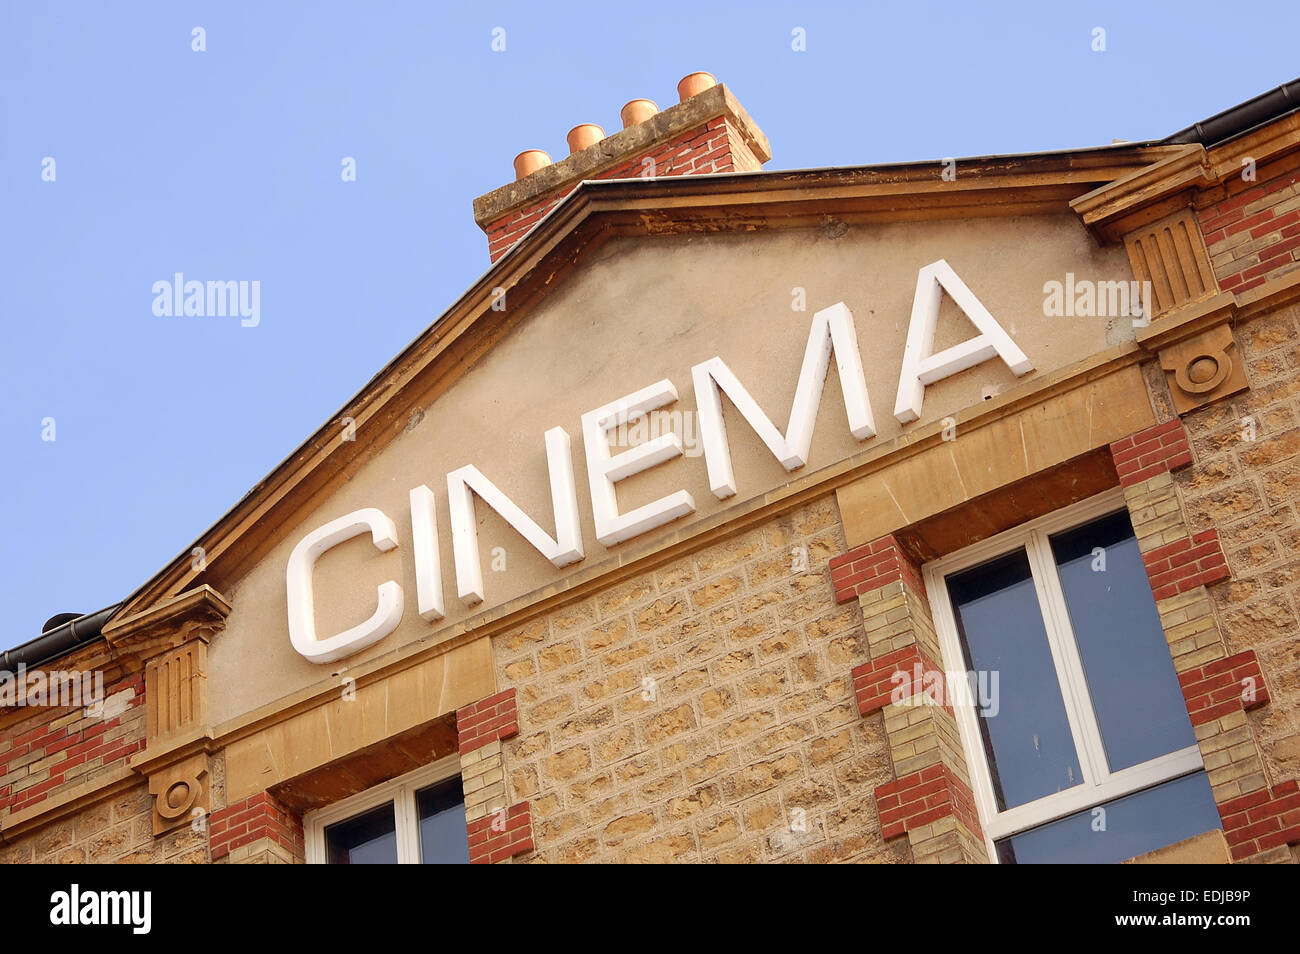 Cinema sign on the facade of an old building in Sedan, France